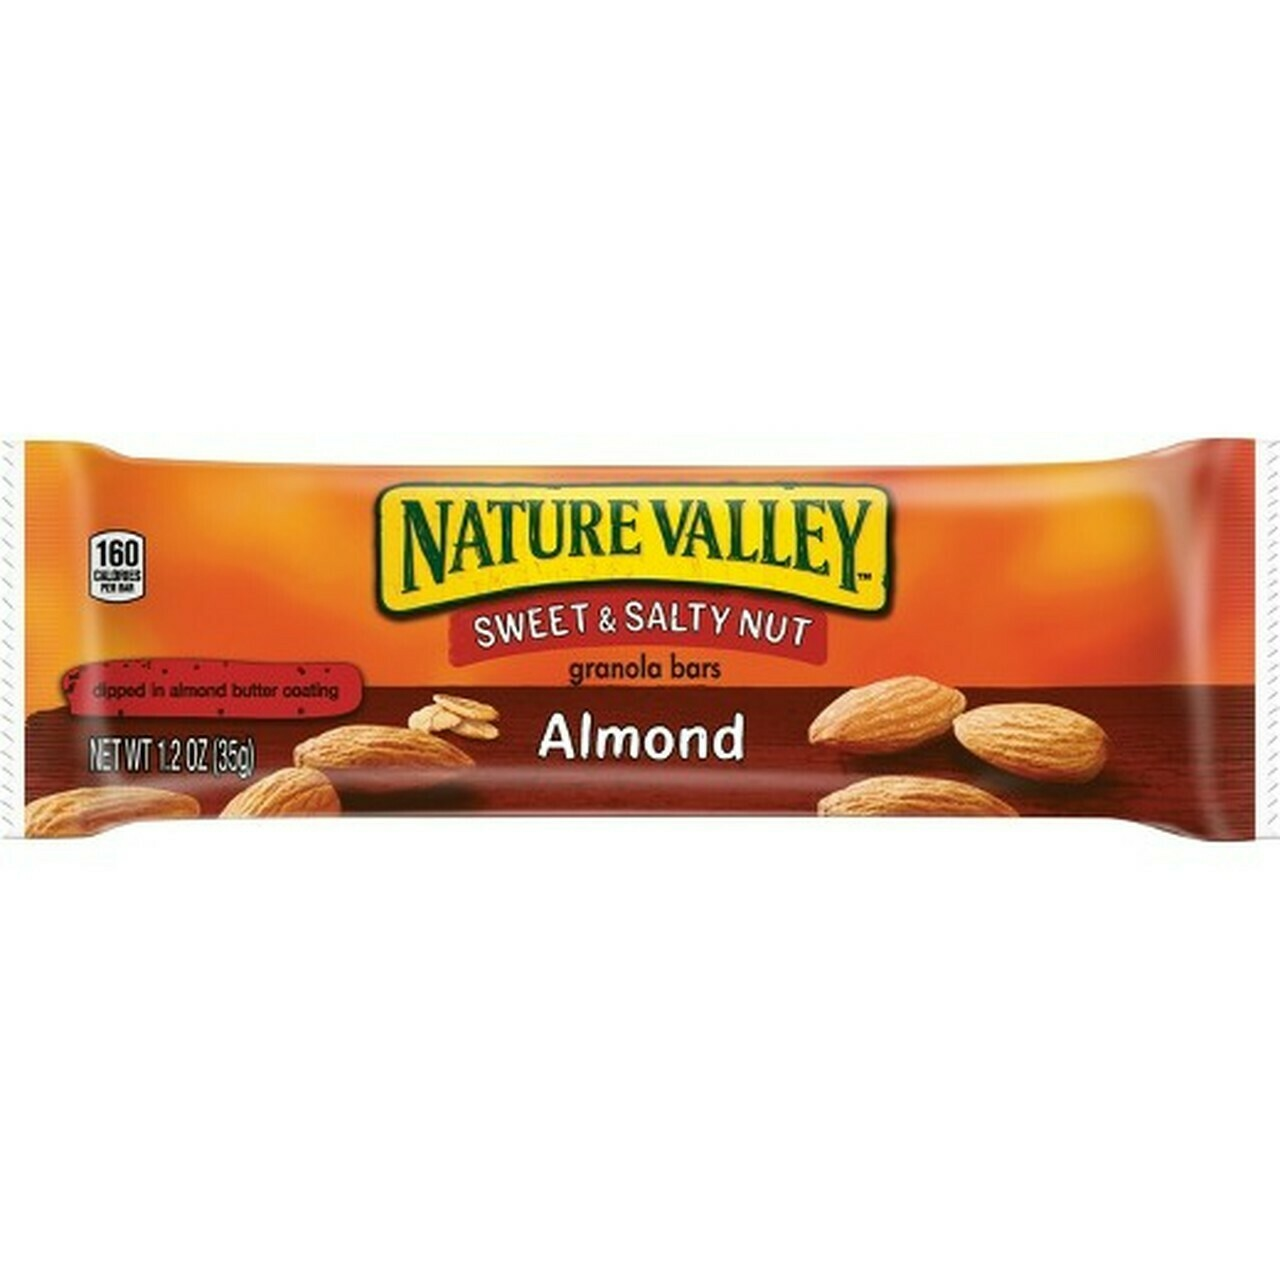 * Nature Valley Almond Sweet & Salty Bar 1.2 Ounces